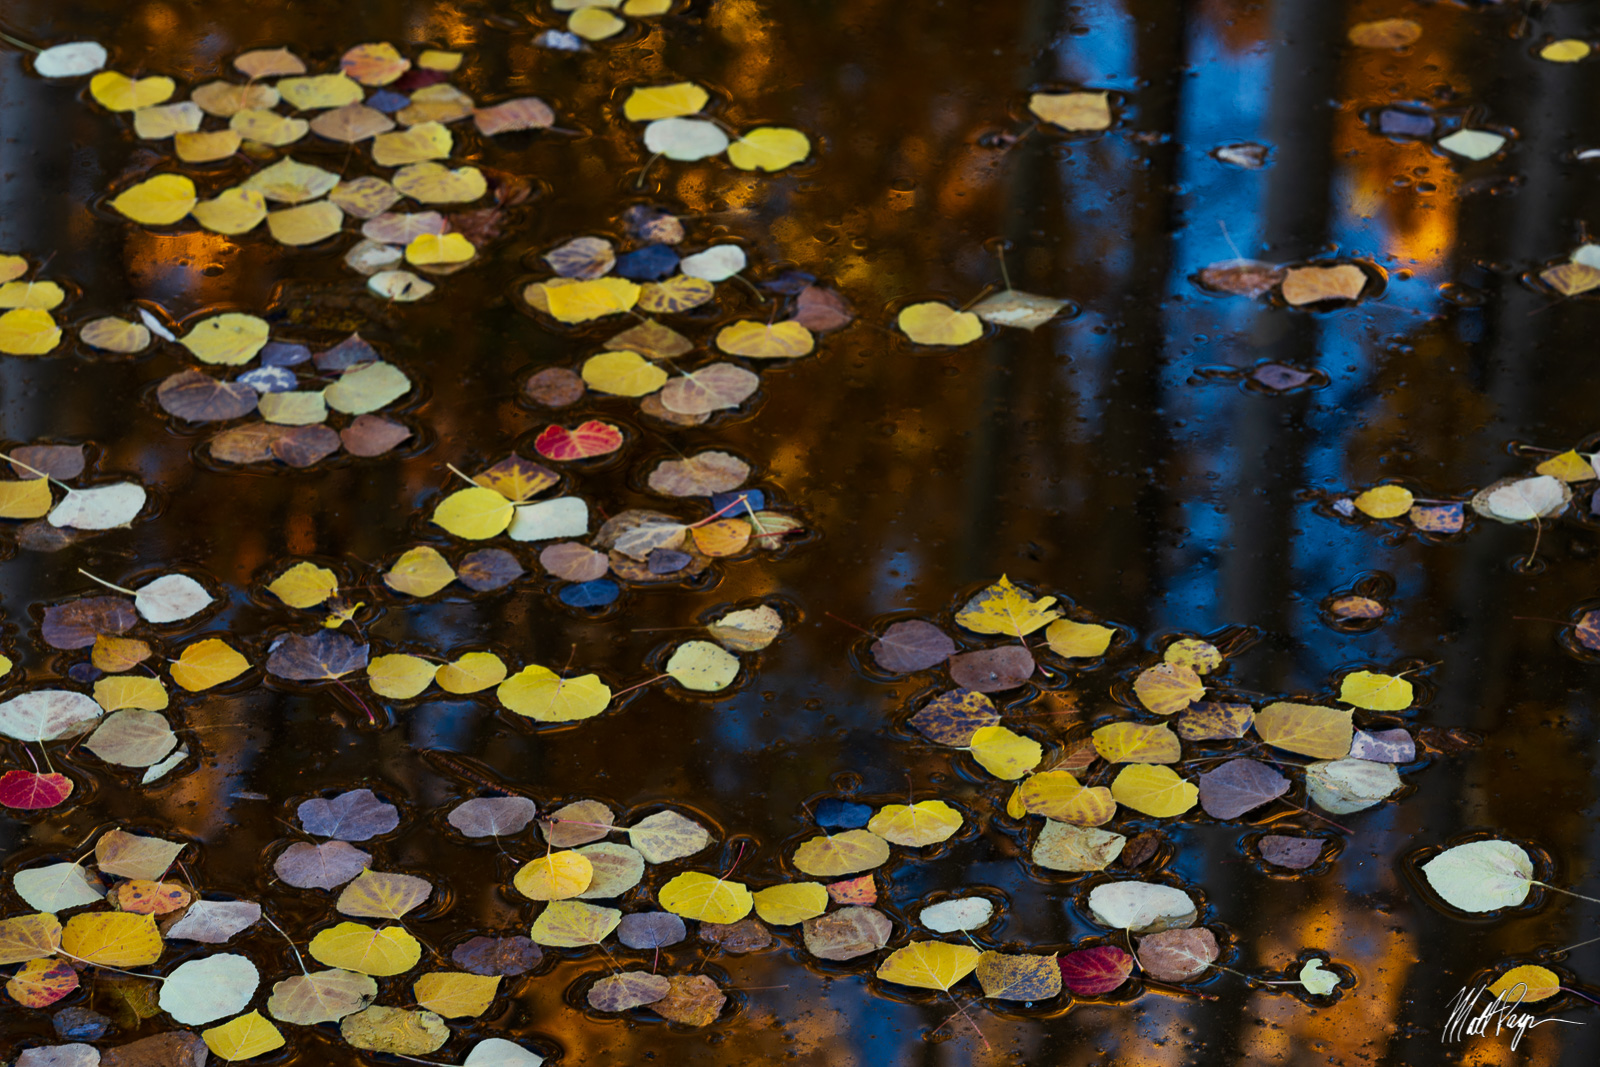 Aspen Tree, Autumn, Colorado, Fall, Fall Colors, Landscape, Leaves, Reflection, Water, abstract, photo